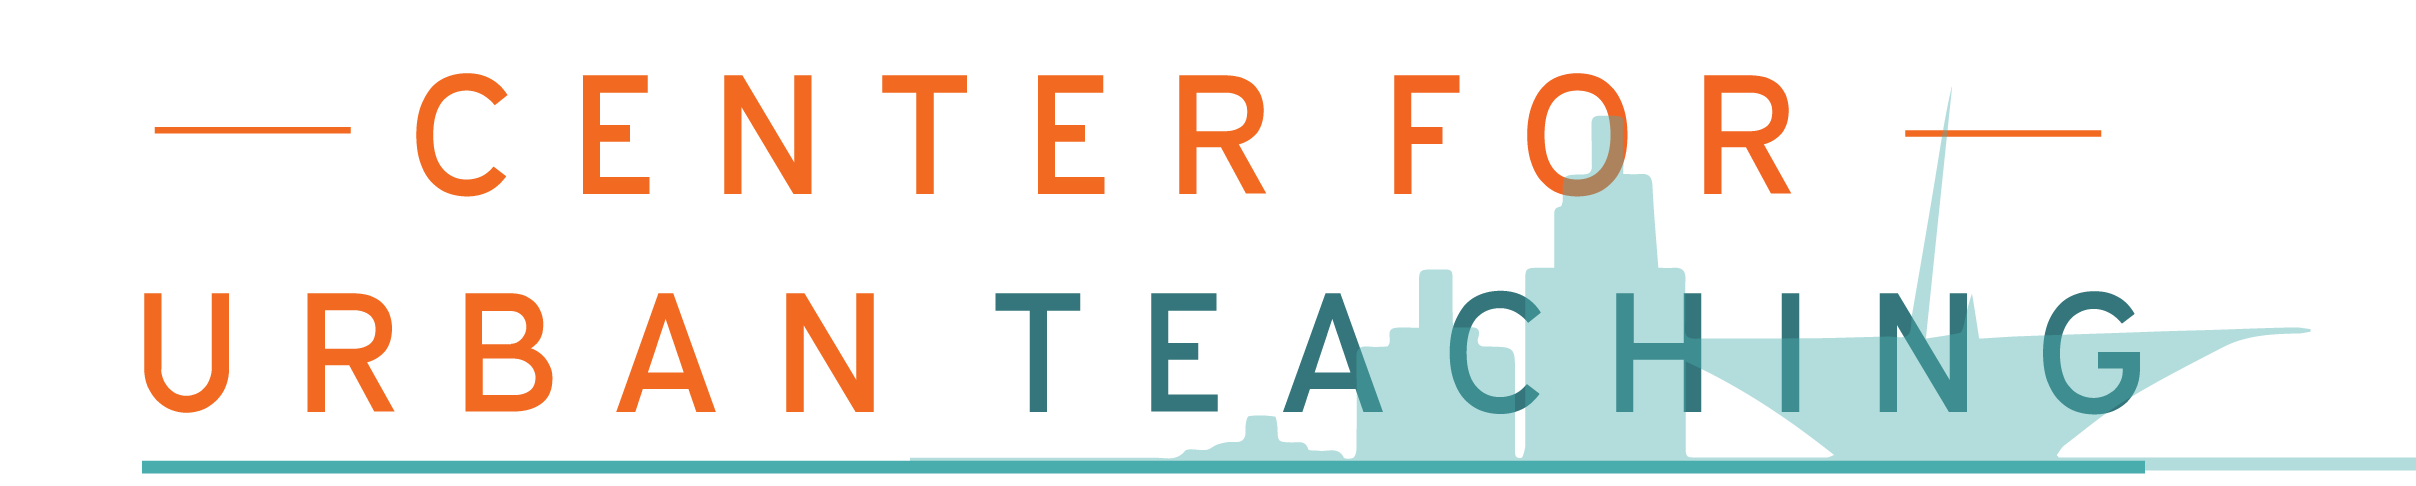 Center for Urban Teaching Logo